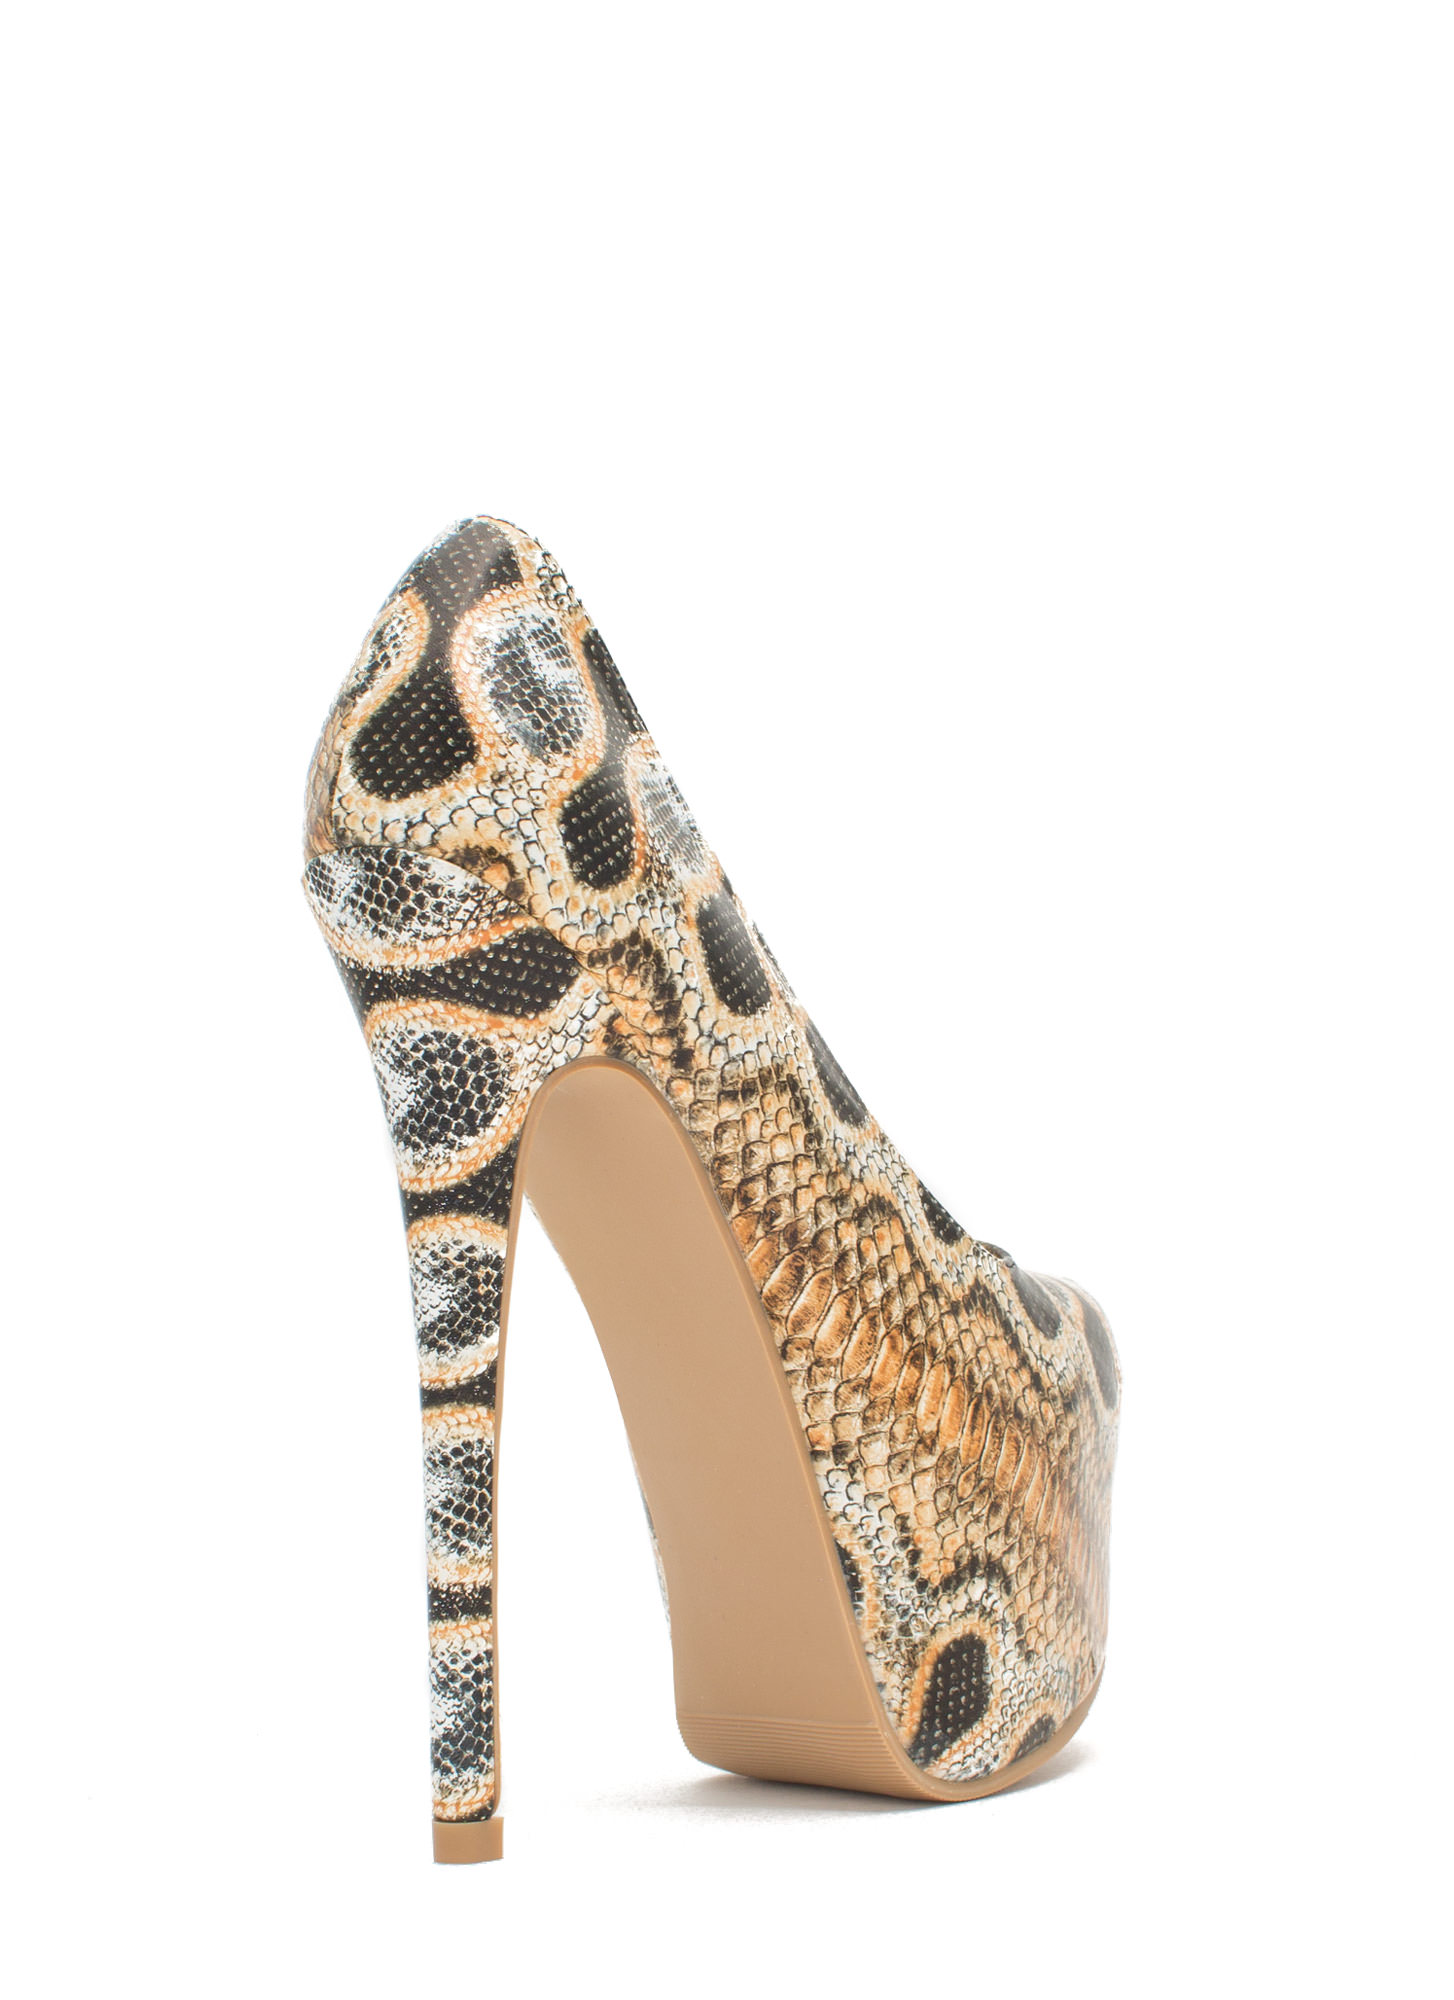 Wild Statement Platform Stiletto Heels PYTHON